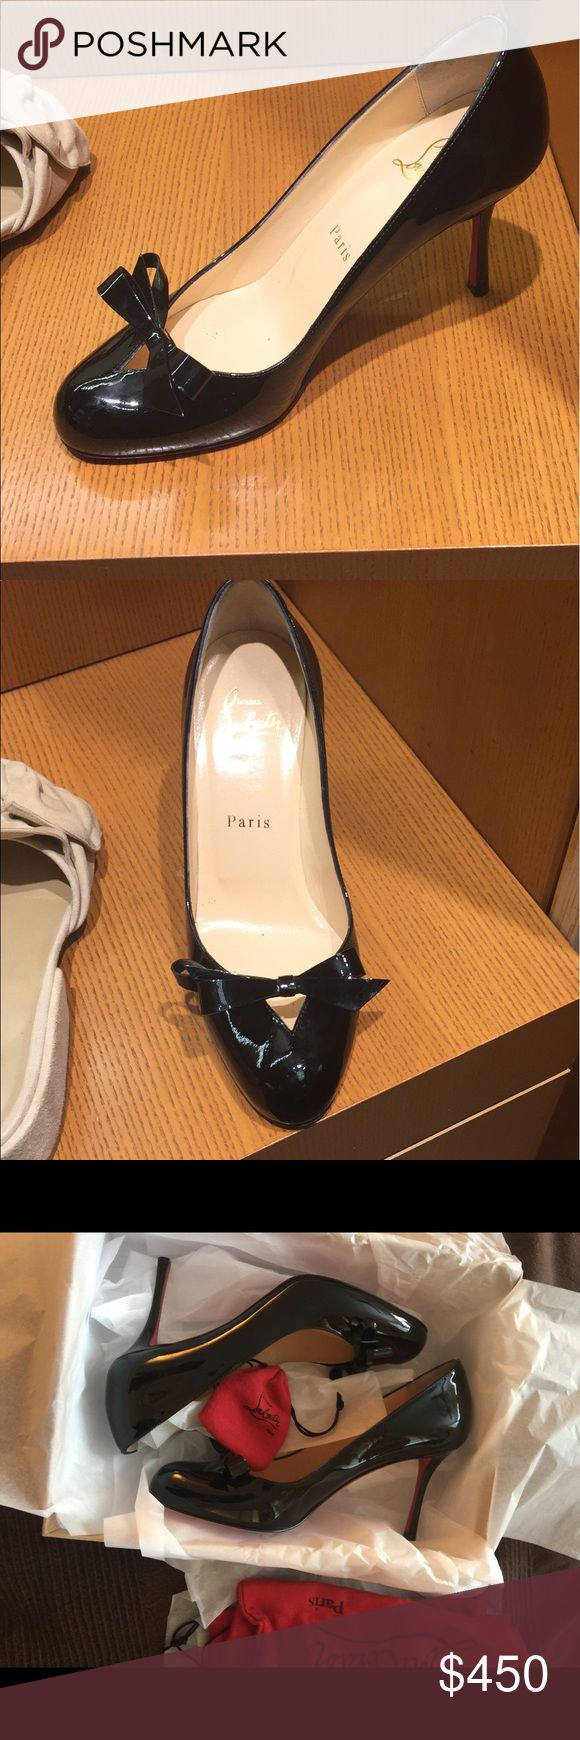 Christian Louboutin  Shoes Brand new. Size 6true to size. Price firm. Original 745 $ + tax Christian Louboutin Shoes